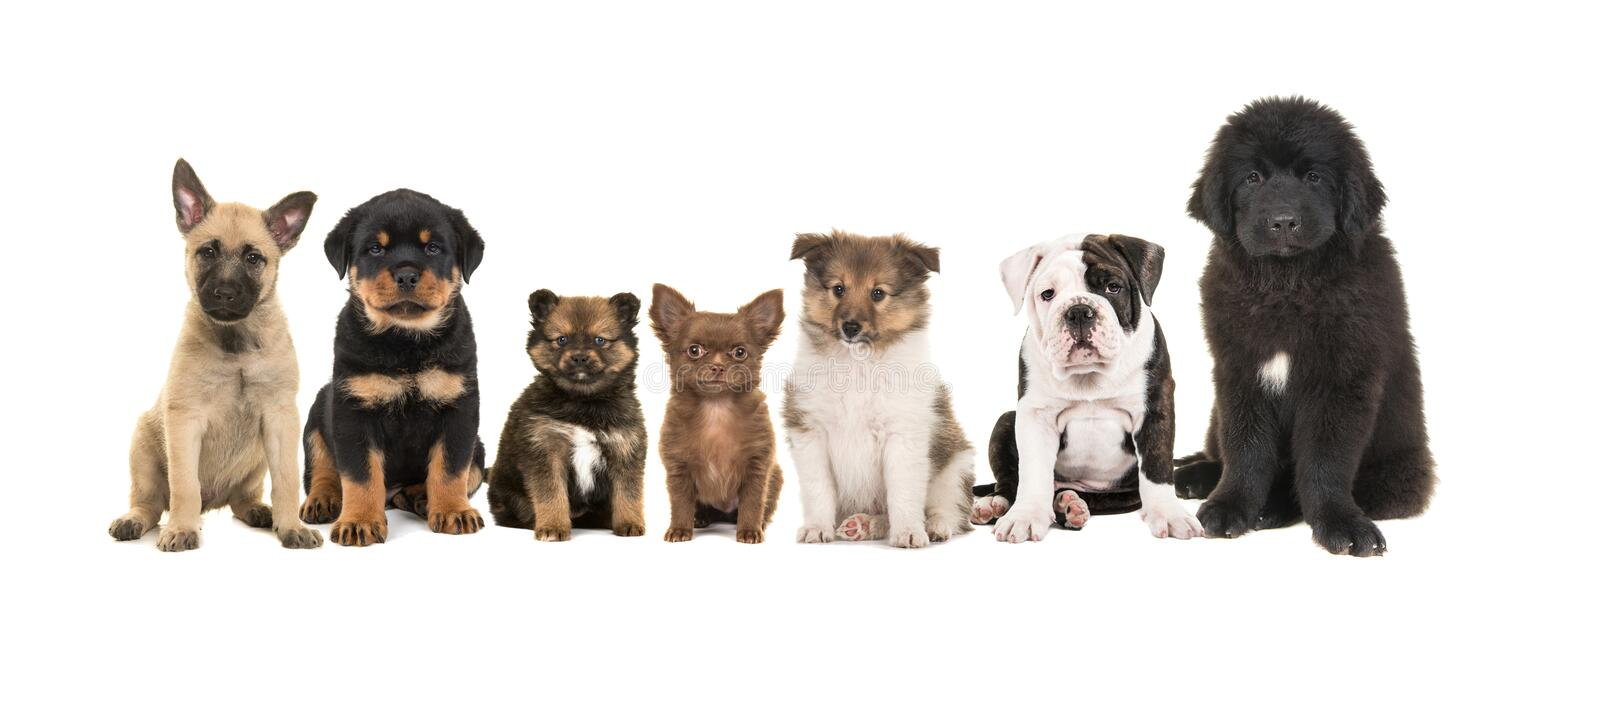 Group of zeven different puppies royalty free stock photo